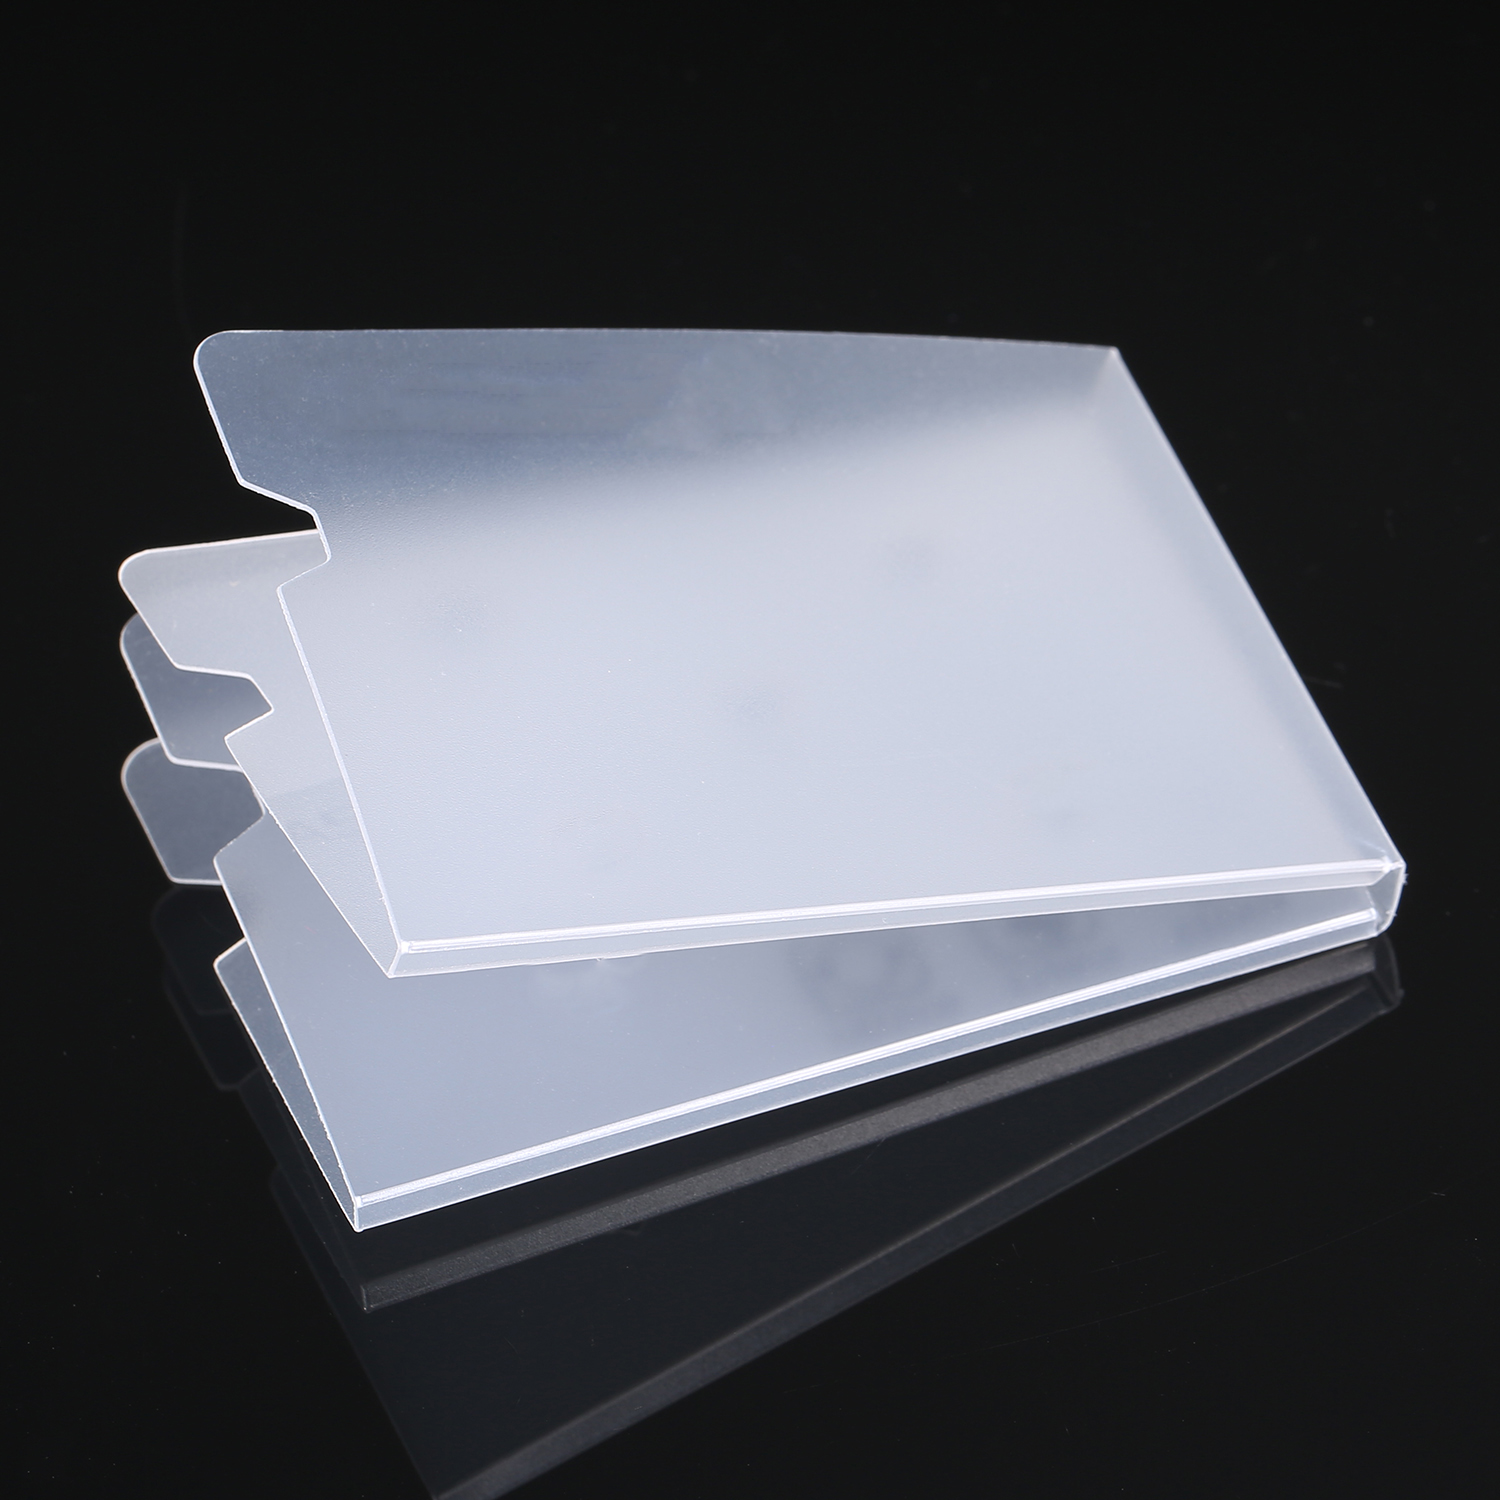 20pcs Foldable Disposable Dustproof Mouth Face Mask Case Storage Clip Box Container Portable 18.5x6cm